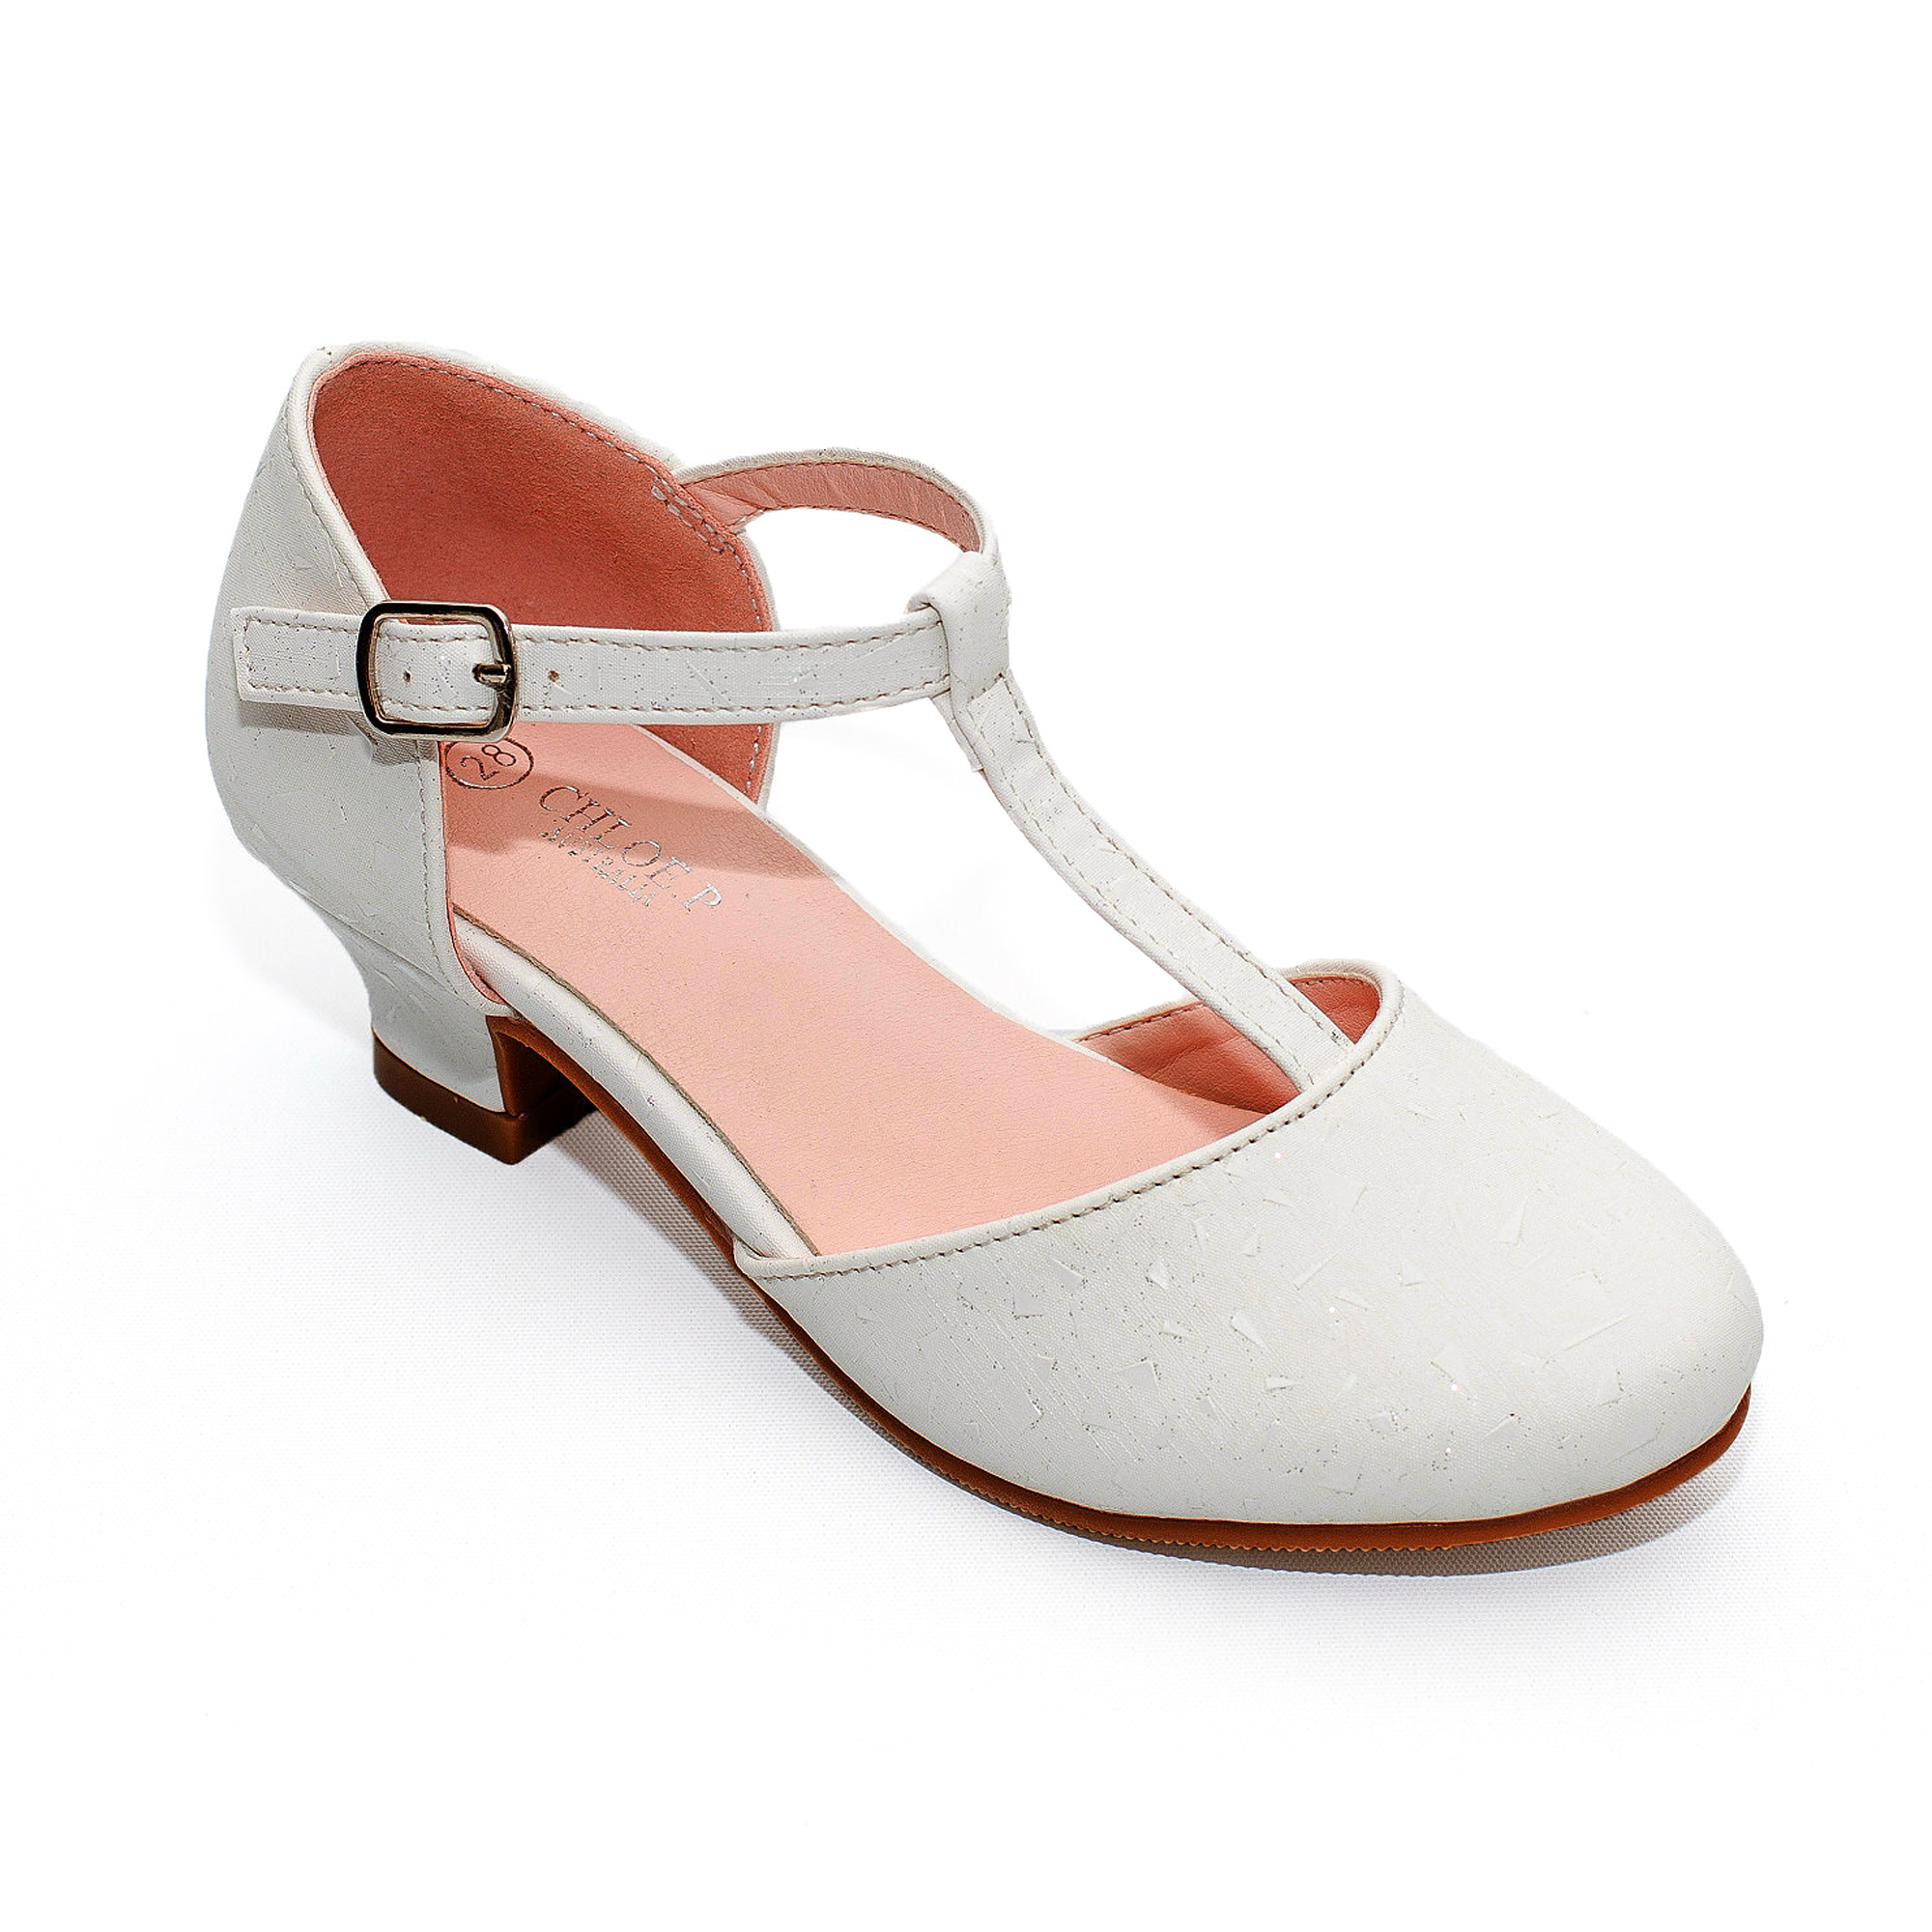 Girls Shoe 3 5 Coral Silver or White Silver SIlver Comfy TBar Buckle Pad Sandals